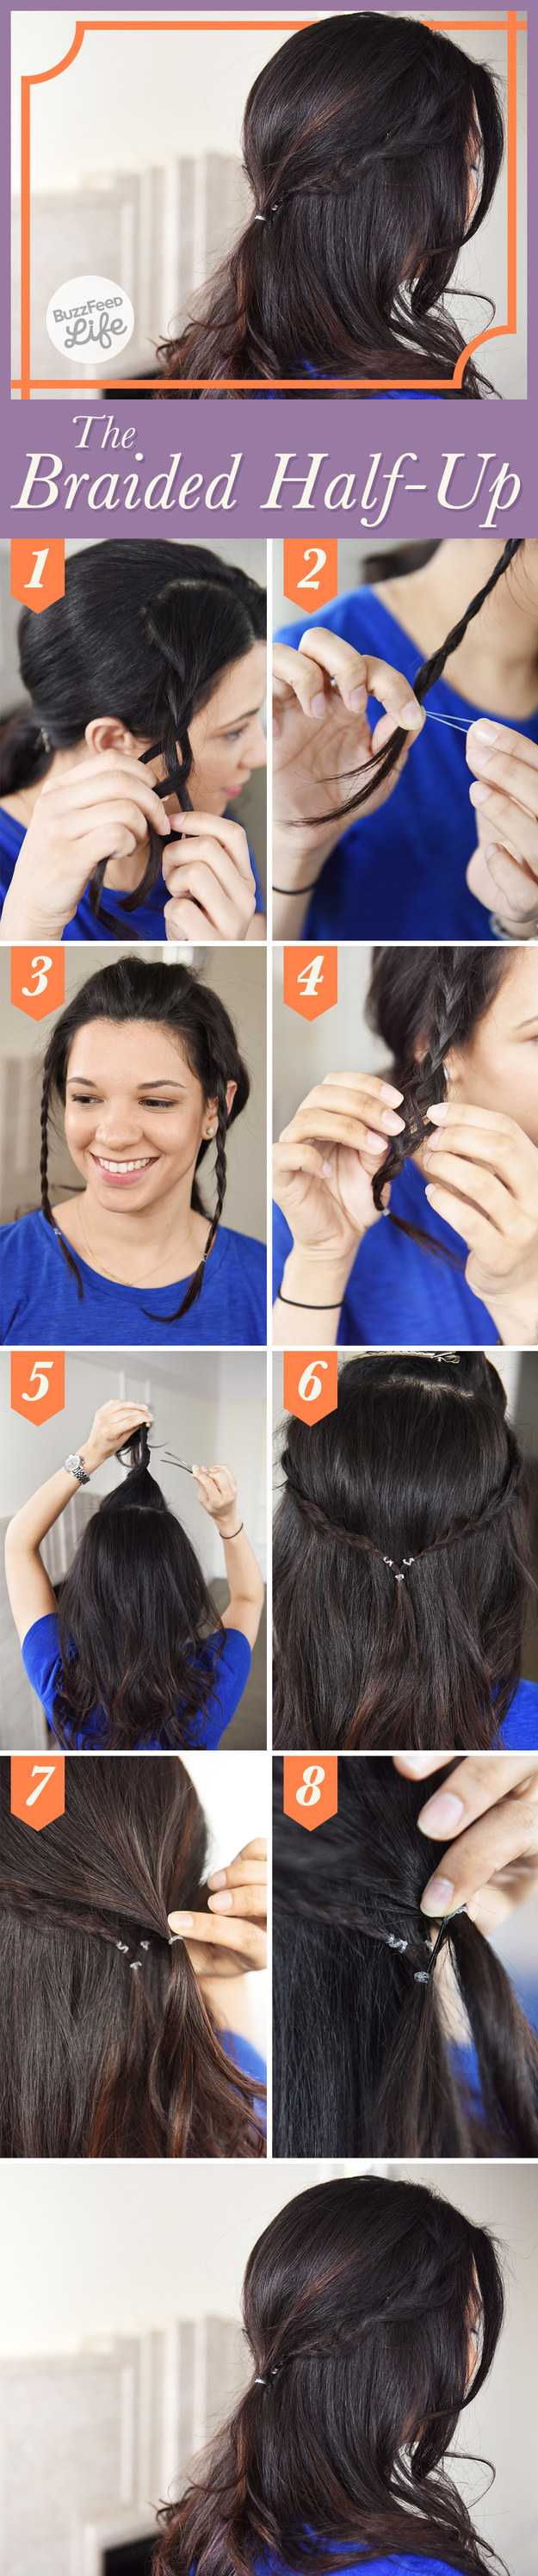 The Braided Half-Up